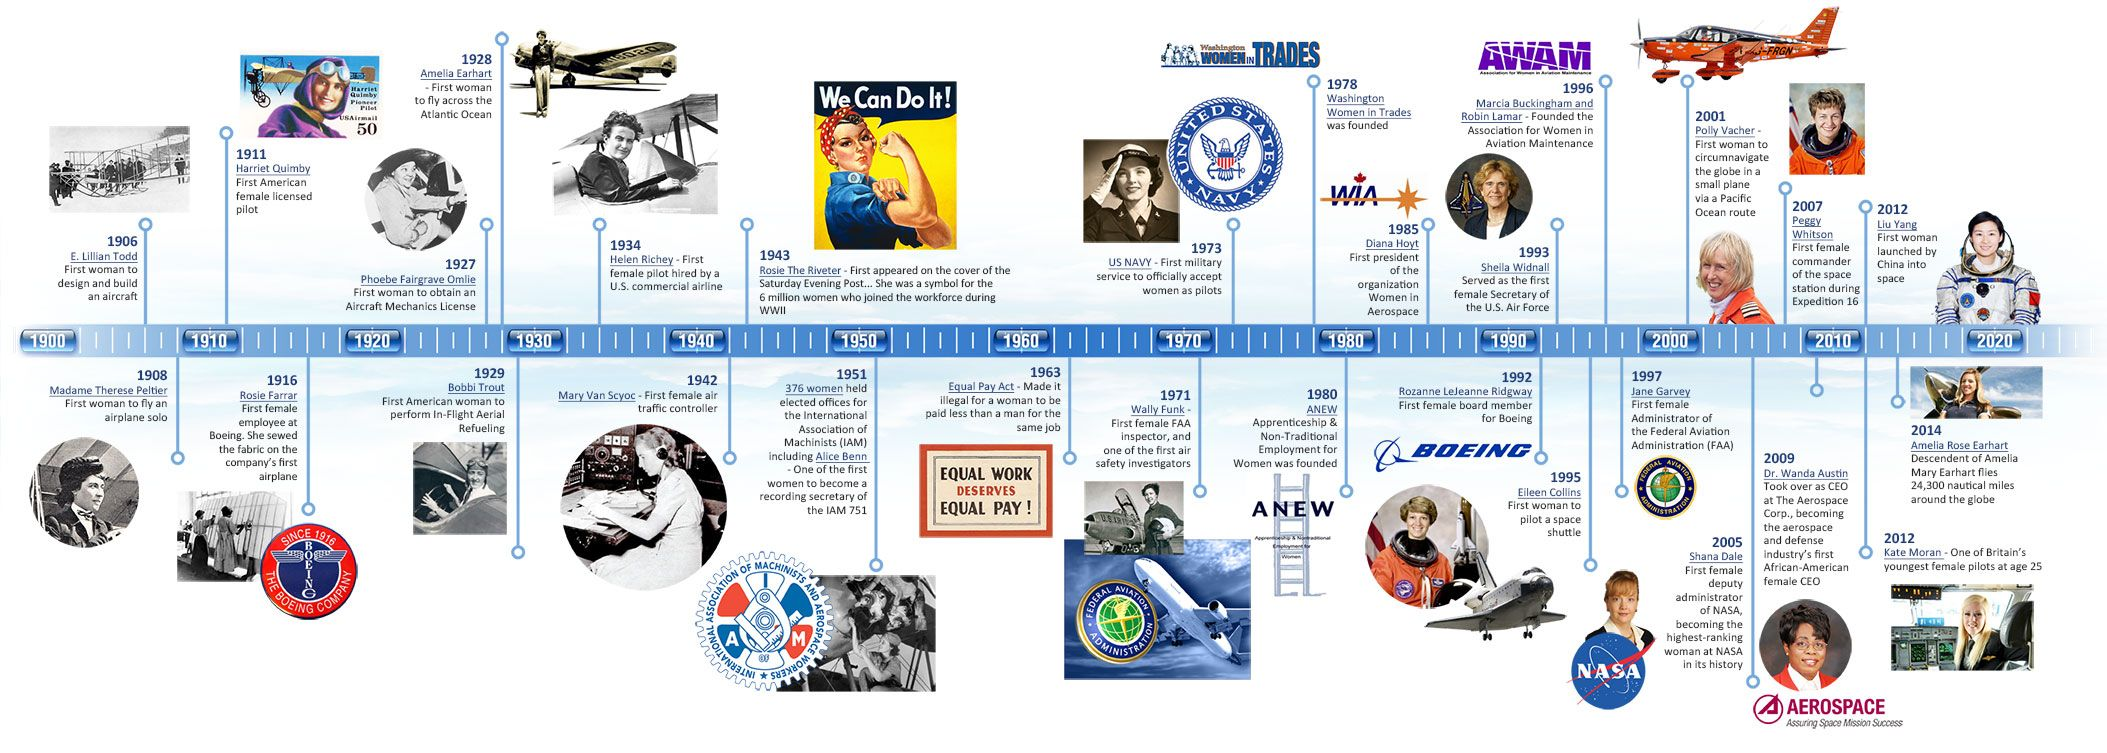 timeline history of aviation